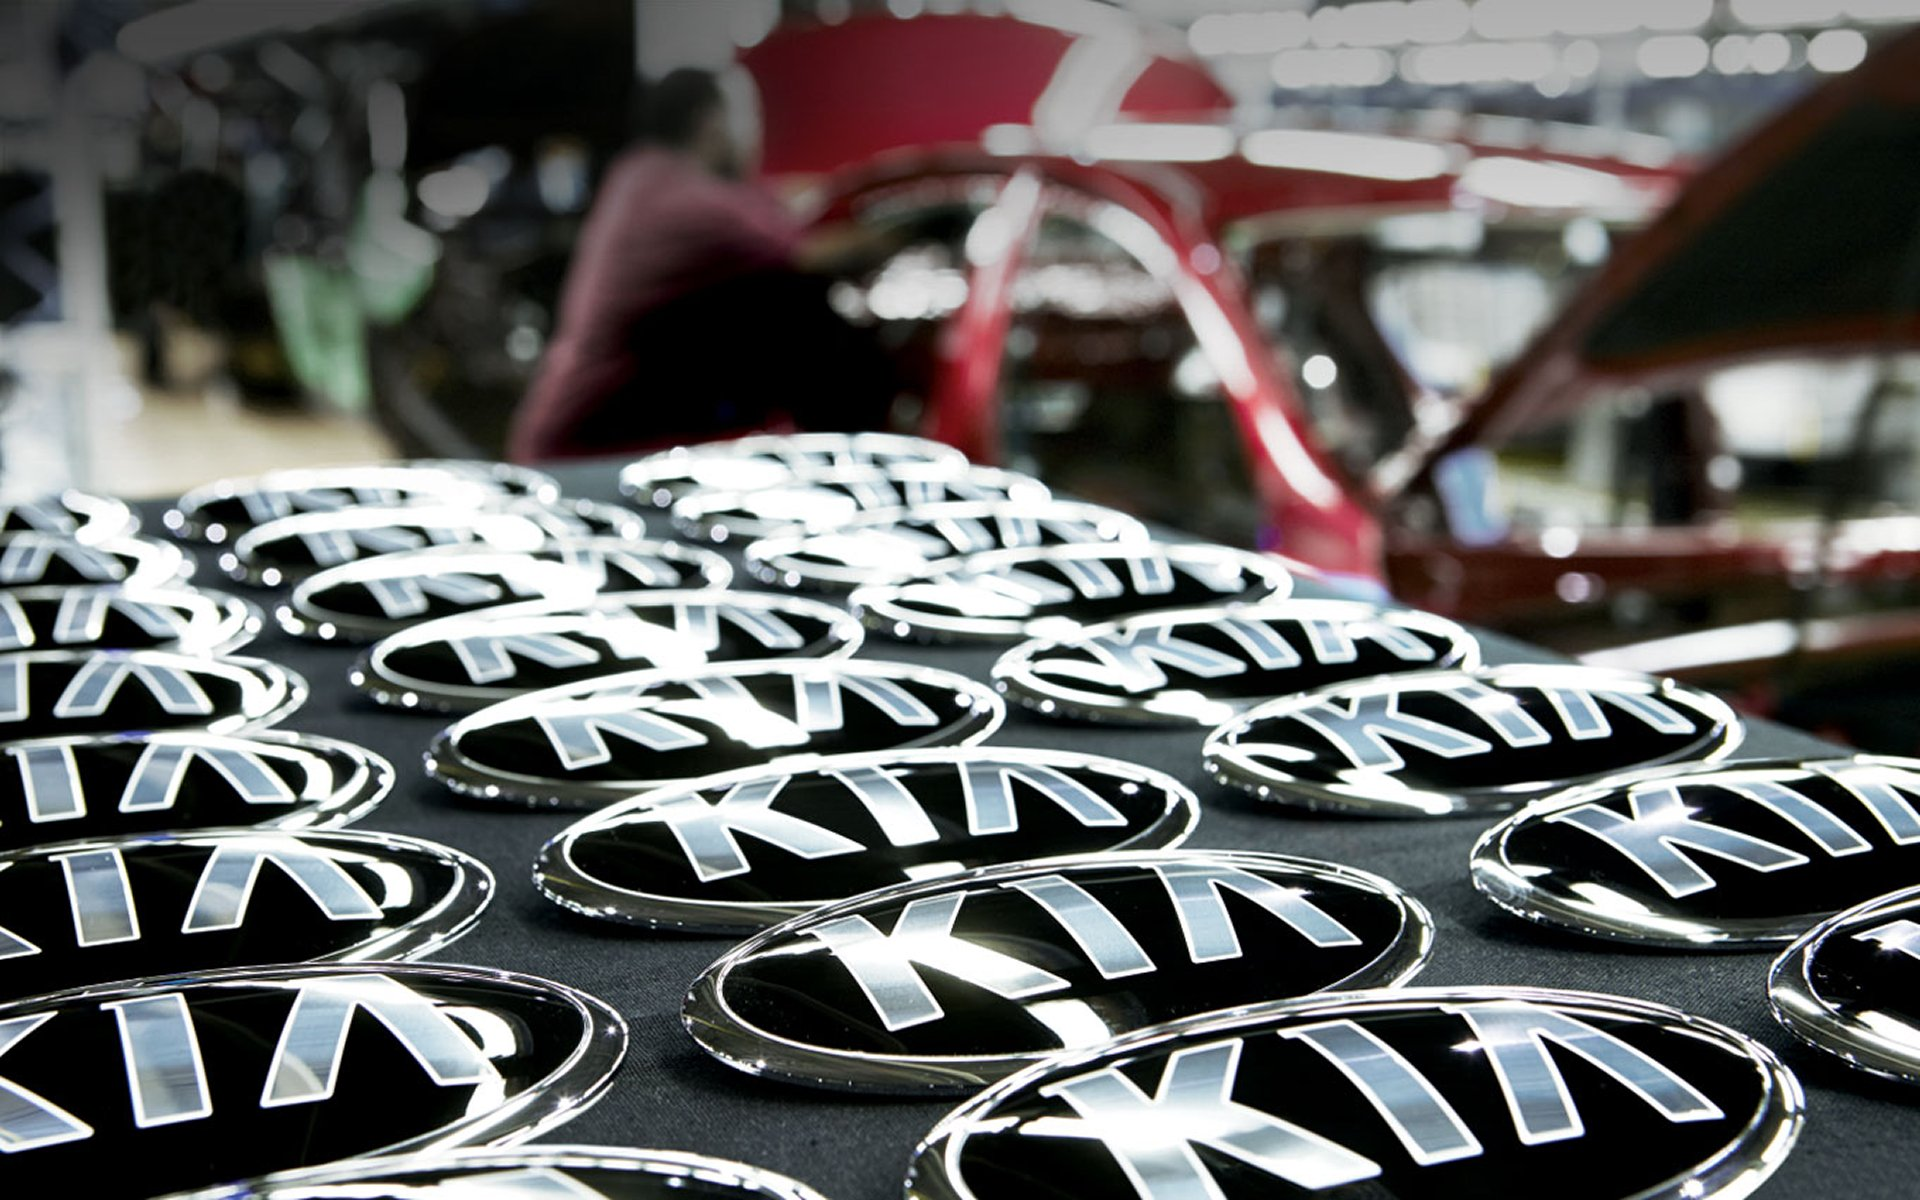 Kia Emblems displayed in factory setting